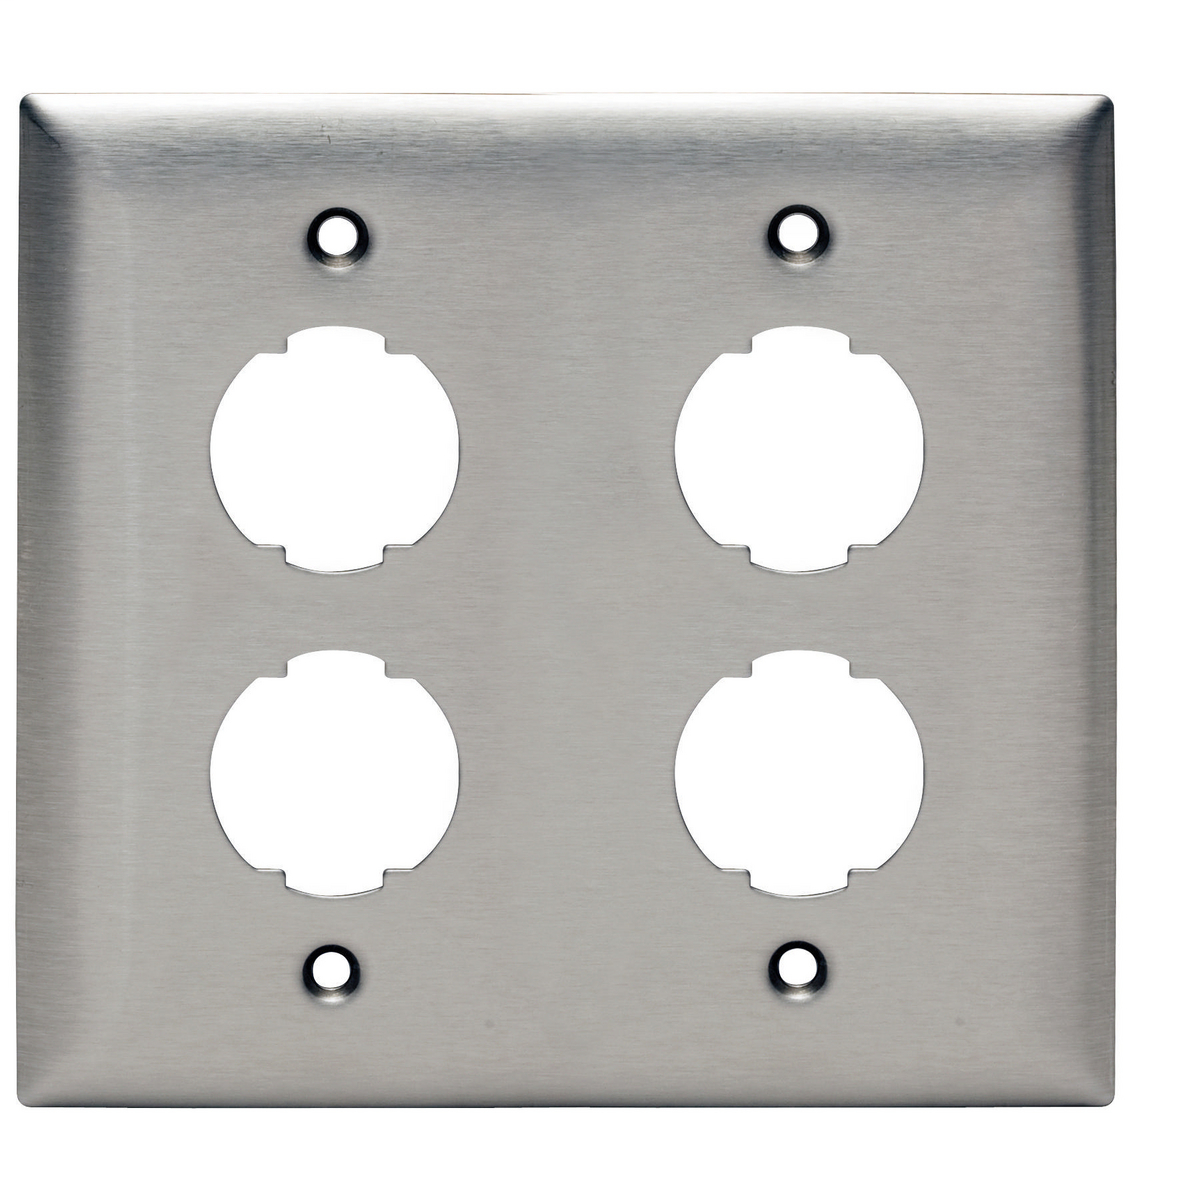 Hubbell Premise Wiring Products, HI-IMPACT Plate, Stainless Steel, 4-Port, 2-Gang